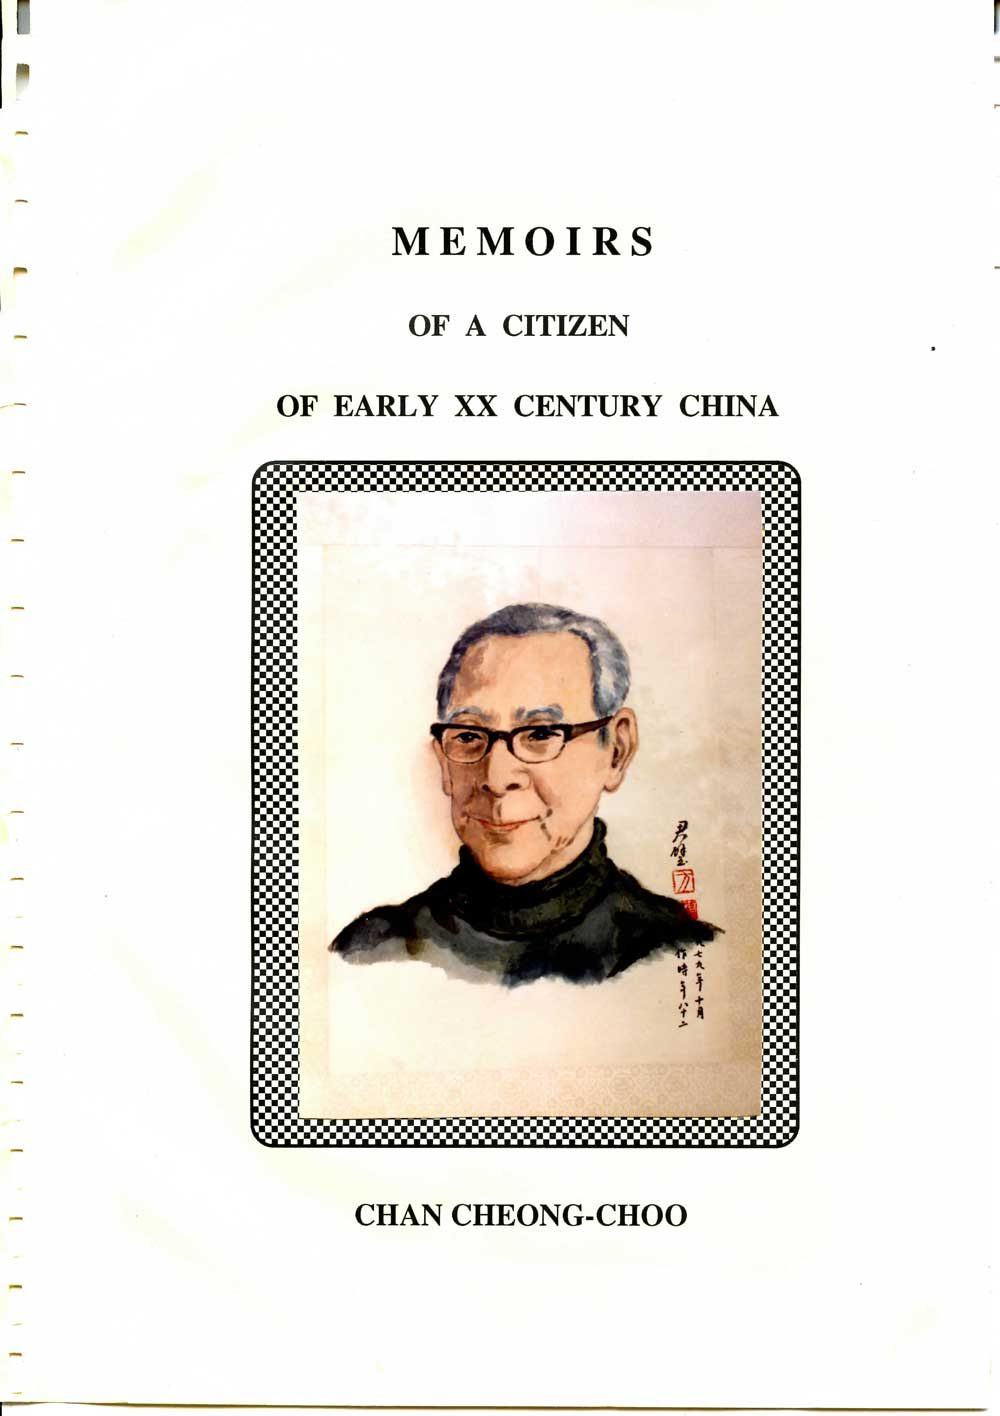 Memoirs of the Citizen of Early XX Century China